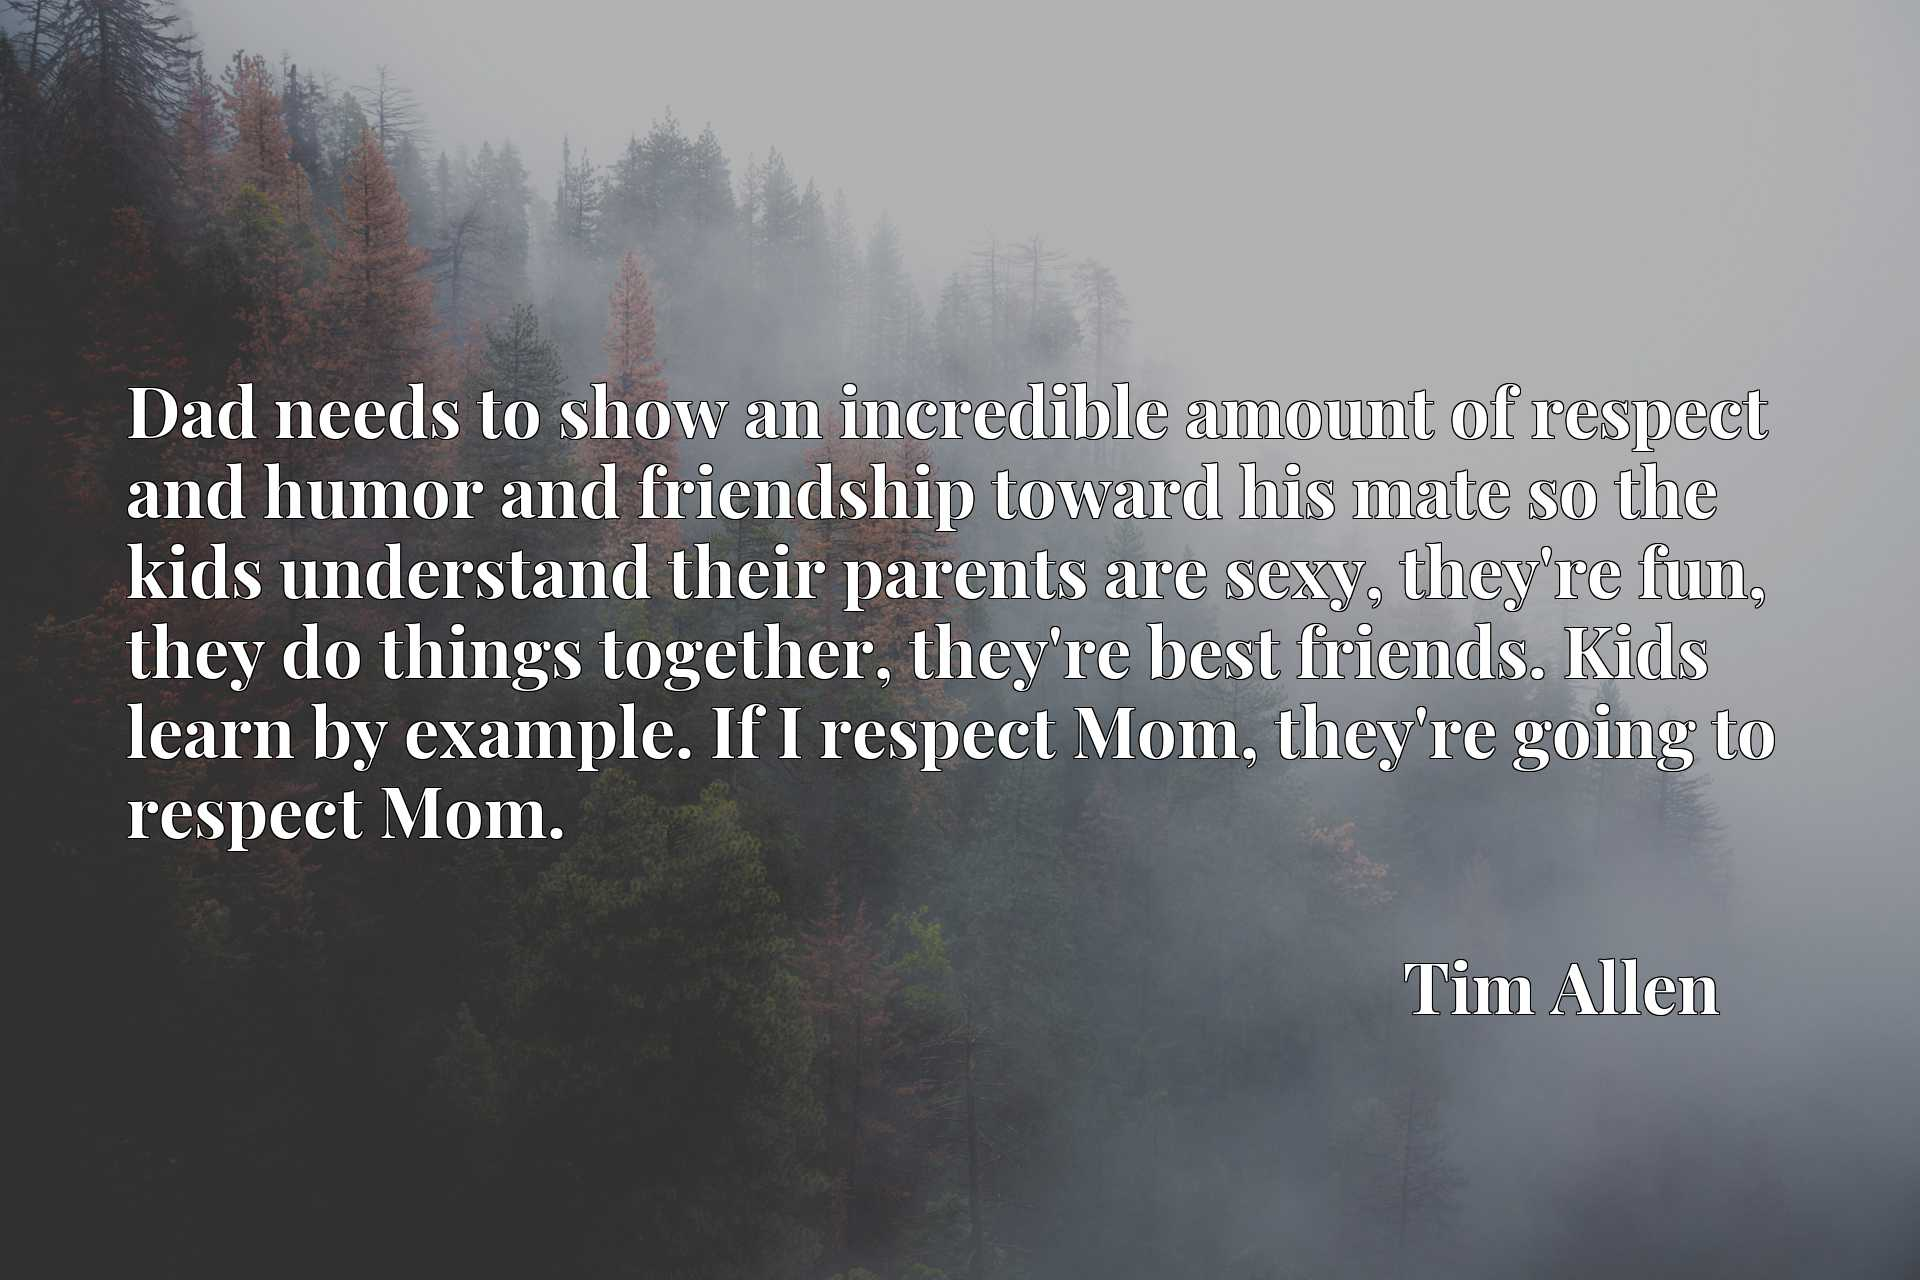 Dad needs to show an incredible amount of respect and humor and friendship toward his mate so the kids understand their parents are sexy, they're fun, they do things together, they're best friends. Kids learn by example. If I respect Mom, they're going to respect Mom.